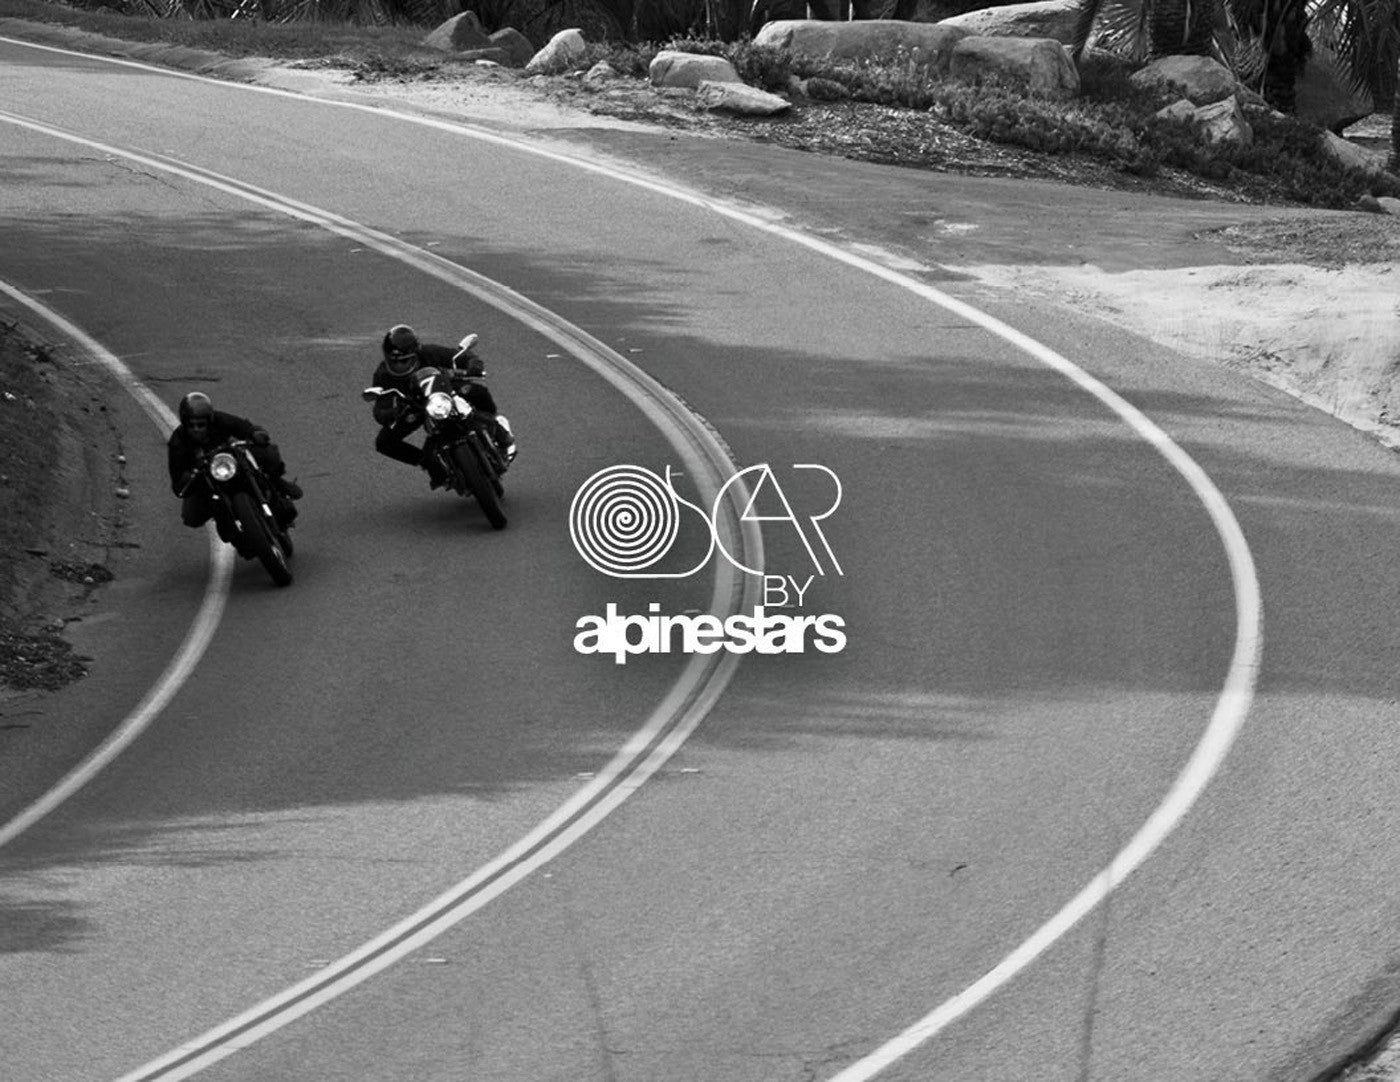 Alpinestars Presents: Oscar By Alpinestars